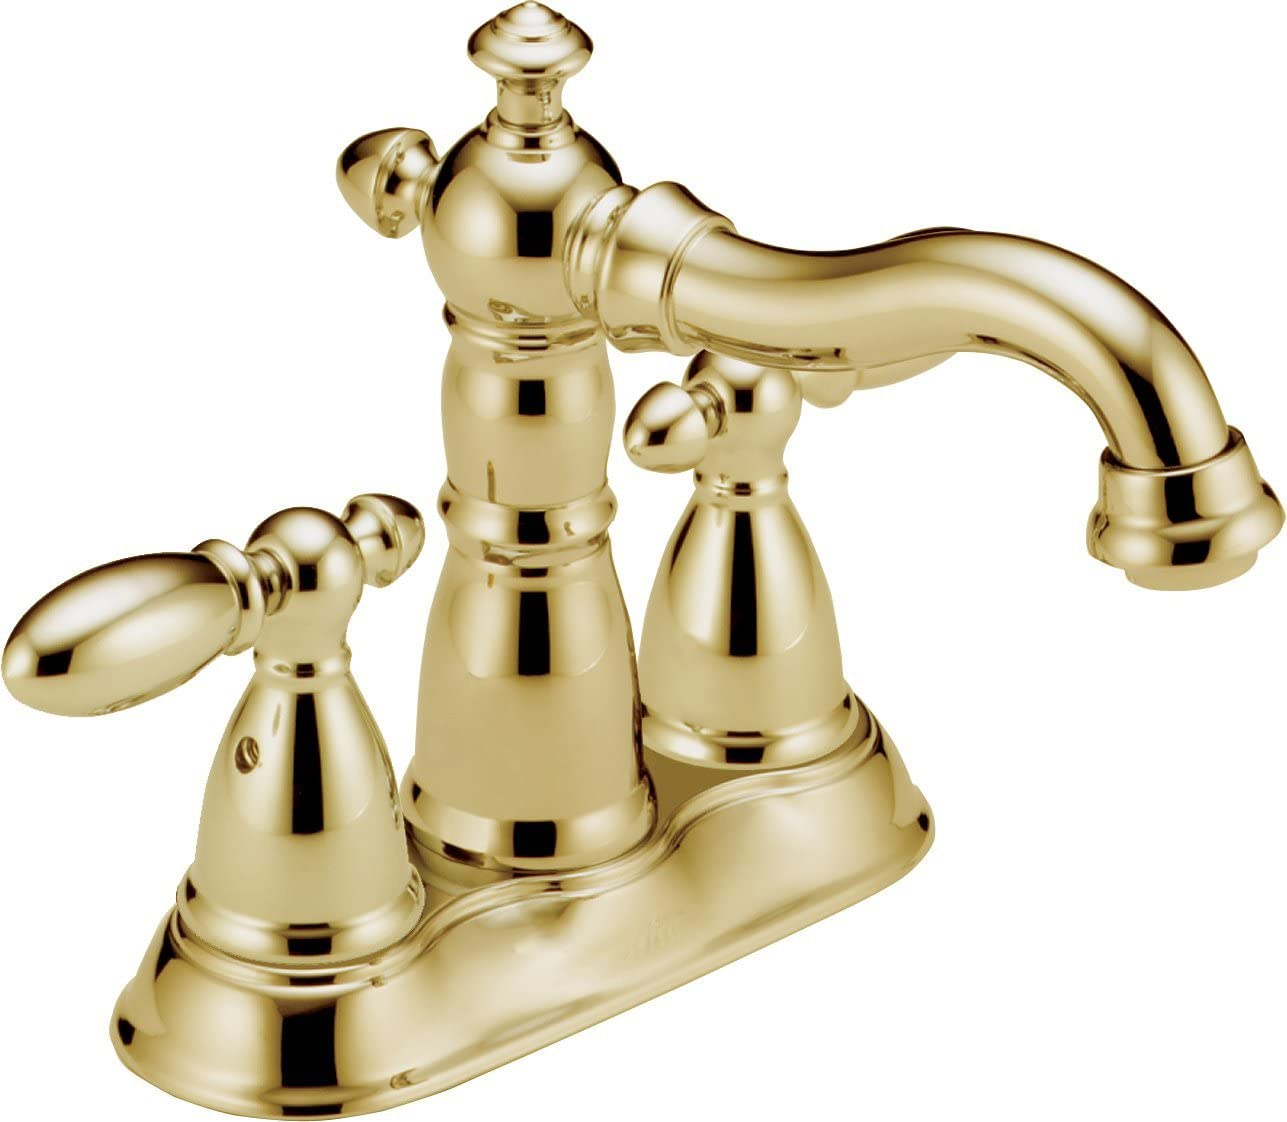 delta faucet victorian brass bathroom faucet centerset bathroom faucet bathroom sink faucet diamond seal technology metal drain assembly polished